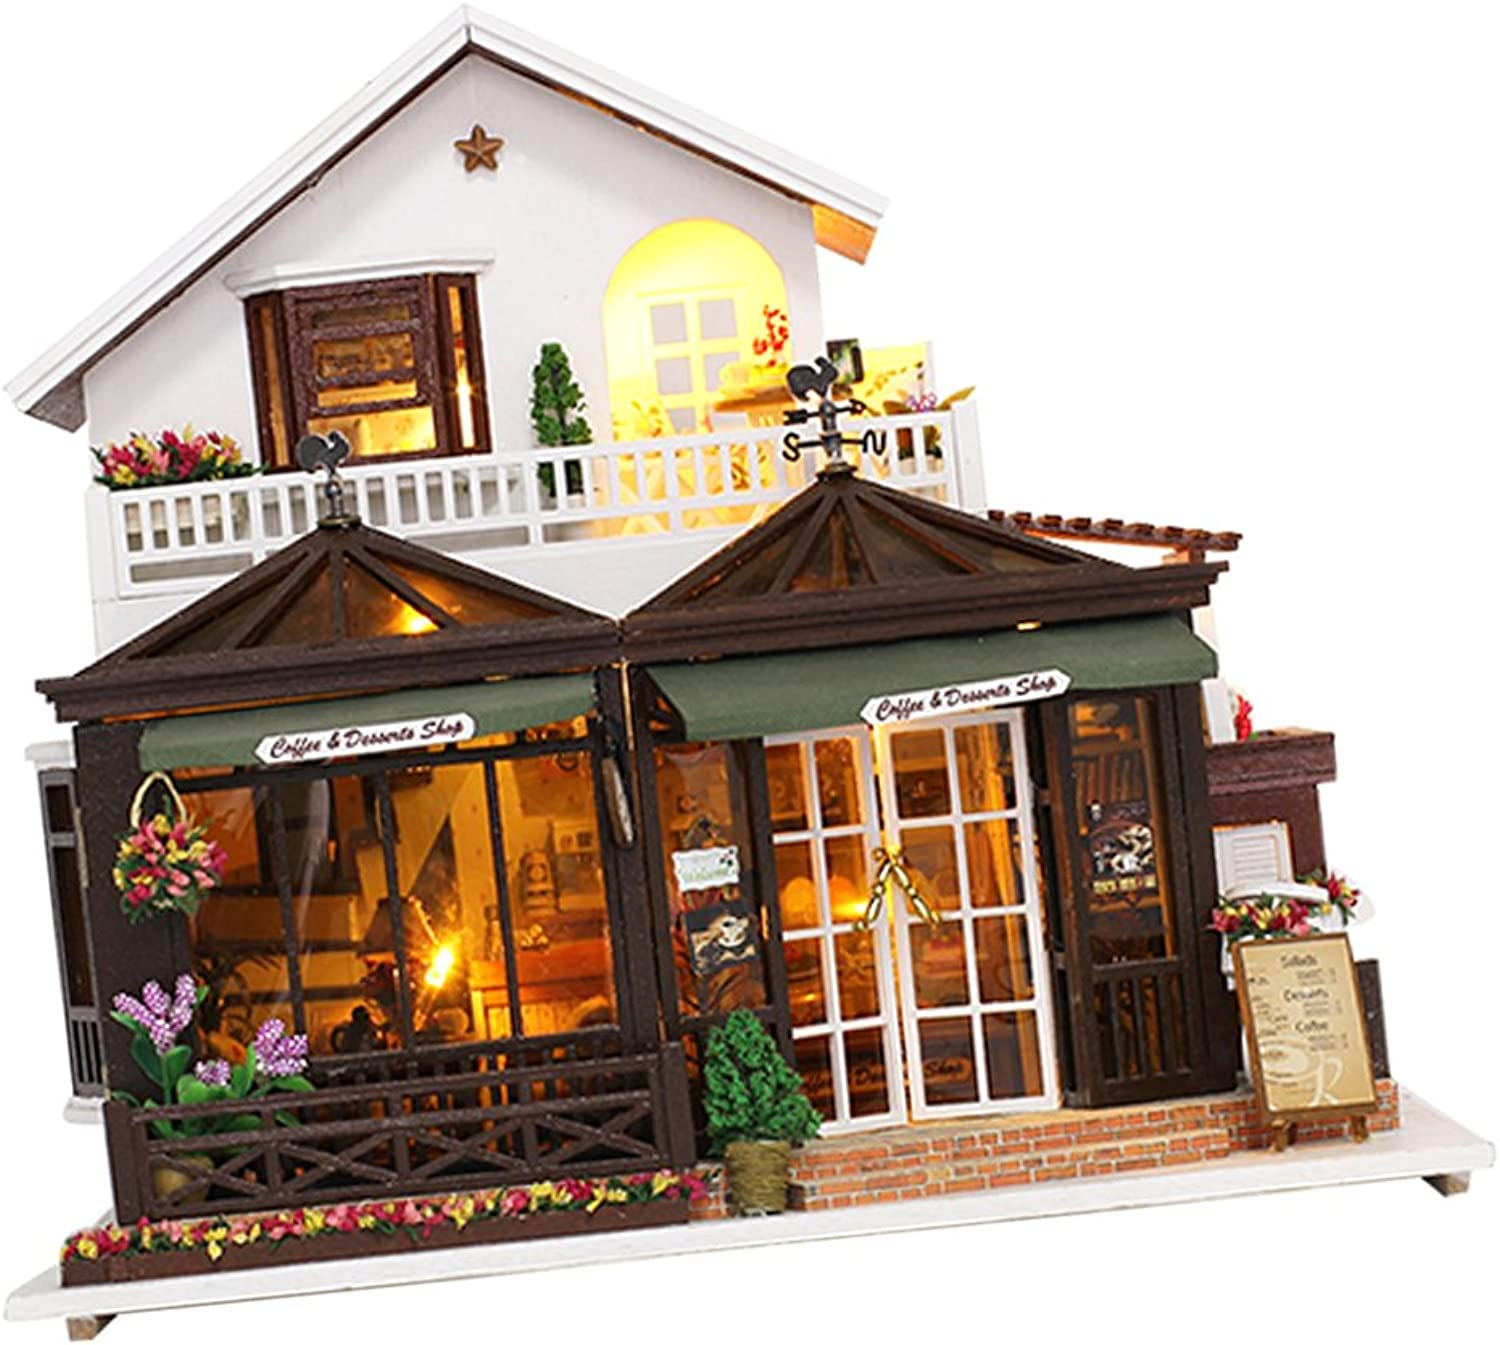 Baoblaze 1 24 Scale DIY Handcraft Miniature Project Kit Wooden Dolls House Model Coffee Shop Style Home Display Decor Gift